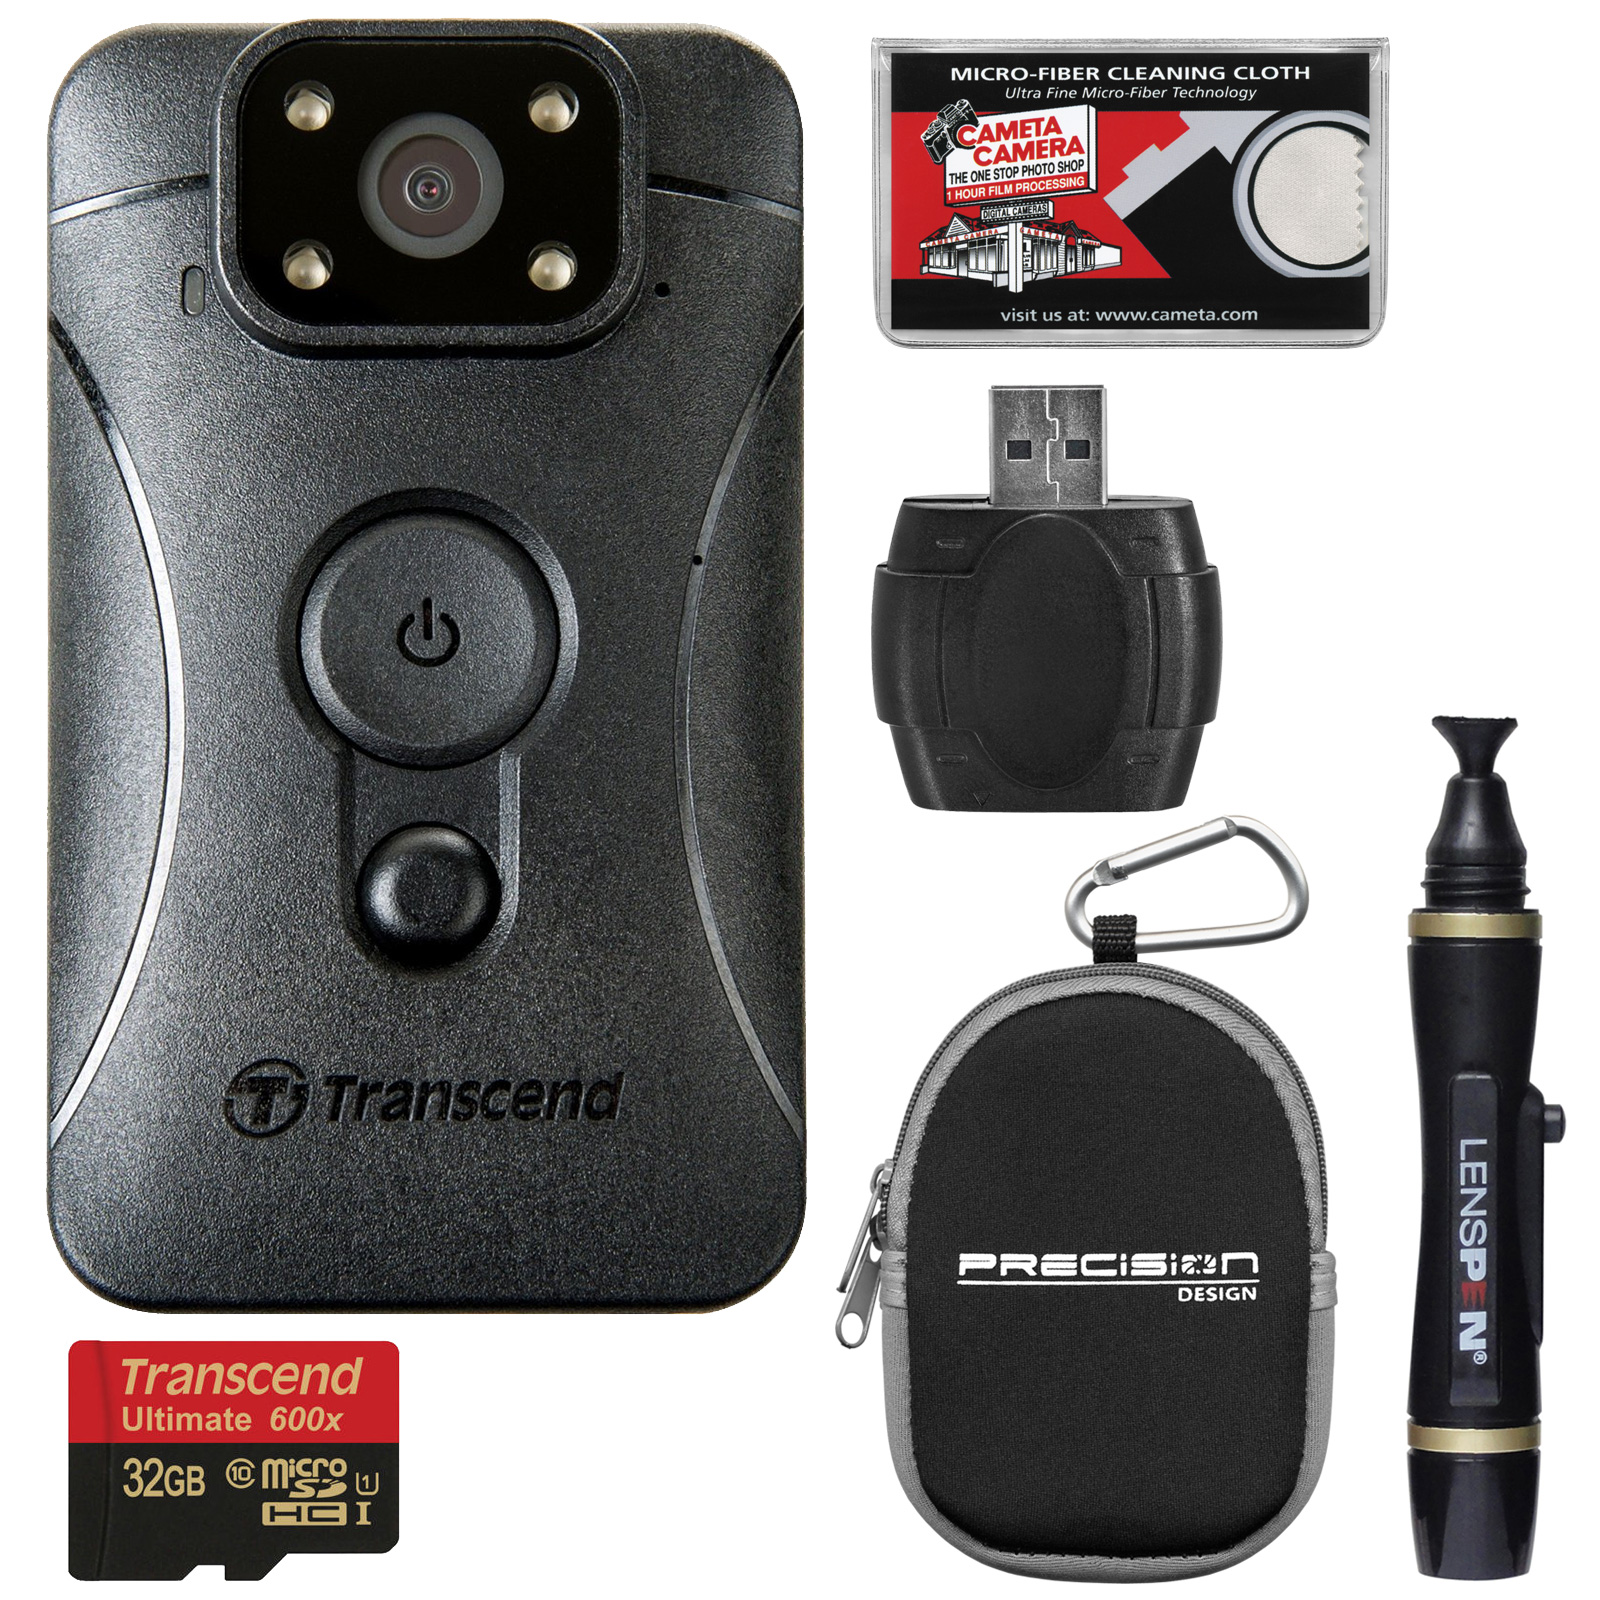 Transcend DrivePro Body 10 1080p HD Video Camera Camcorder with 32GB Card + Case + Lenspen + Kit